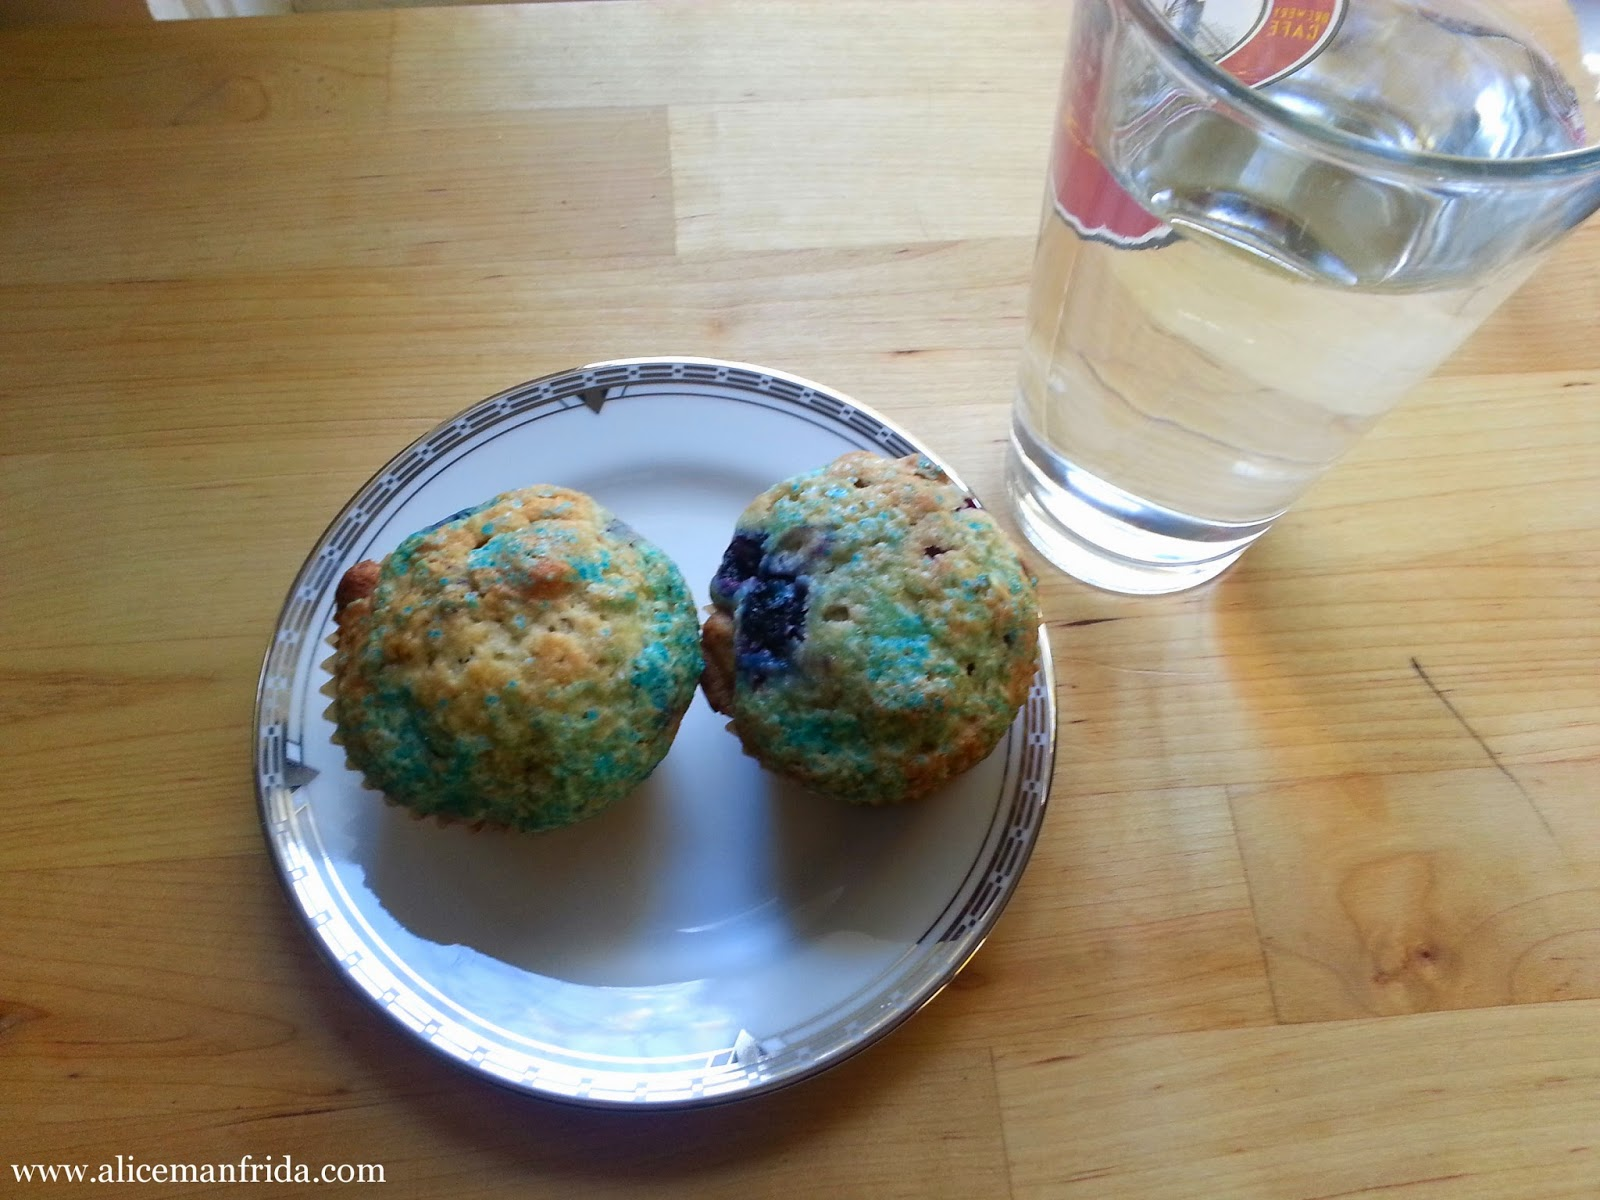 breakfast, Tasty Tuesday, What I Ate Today